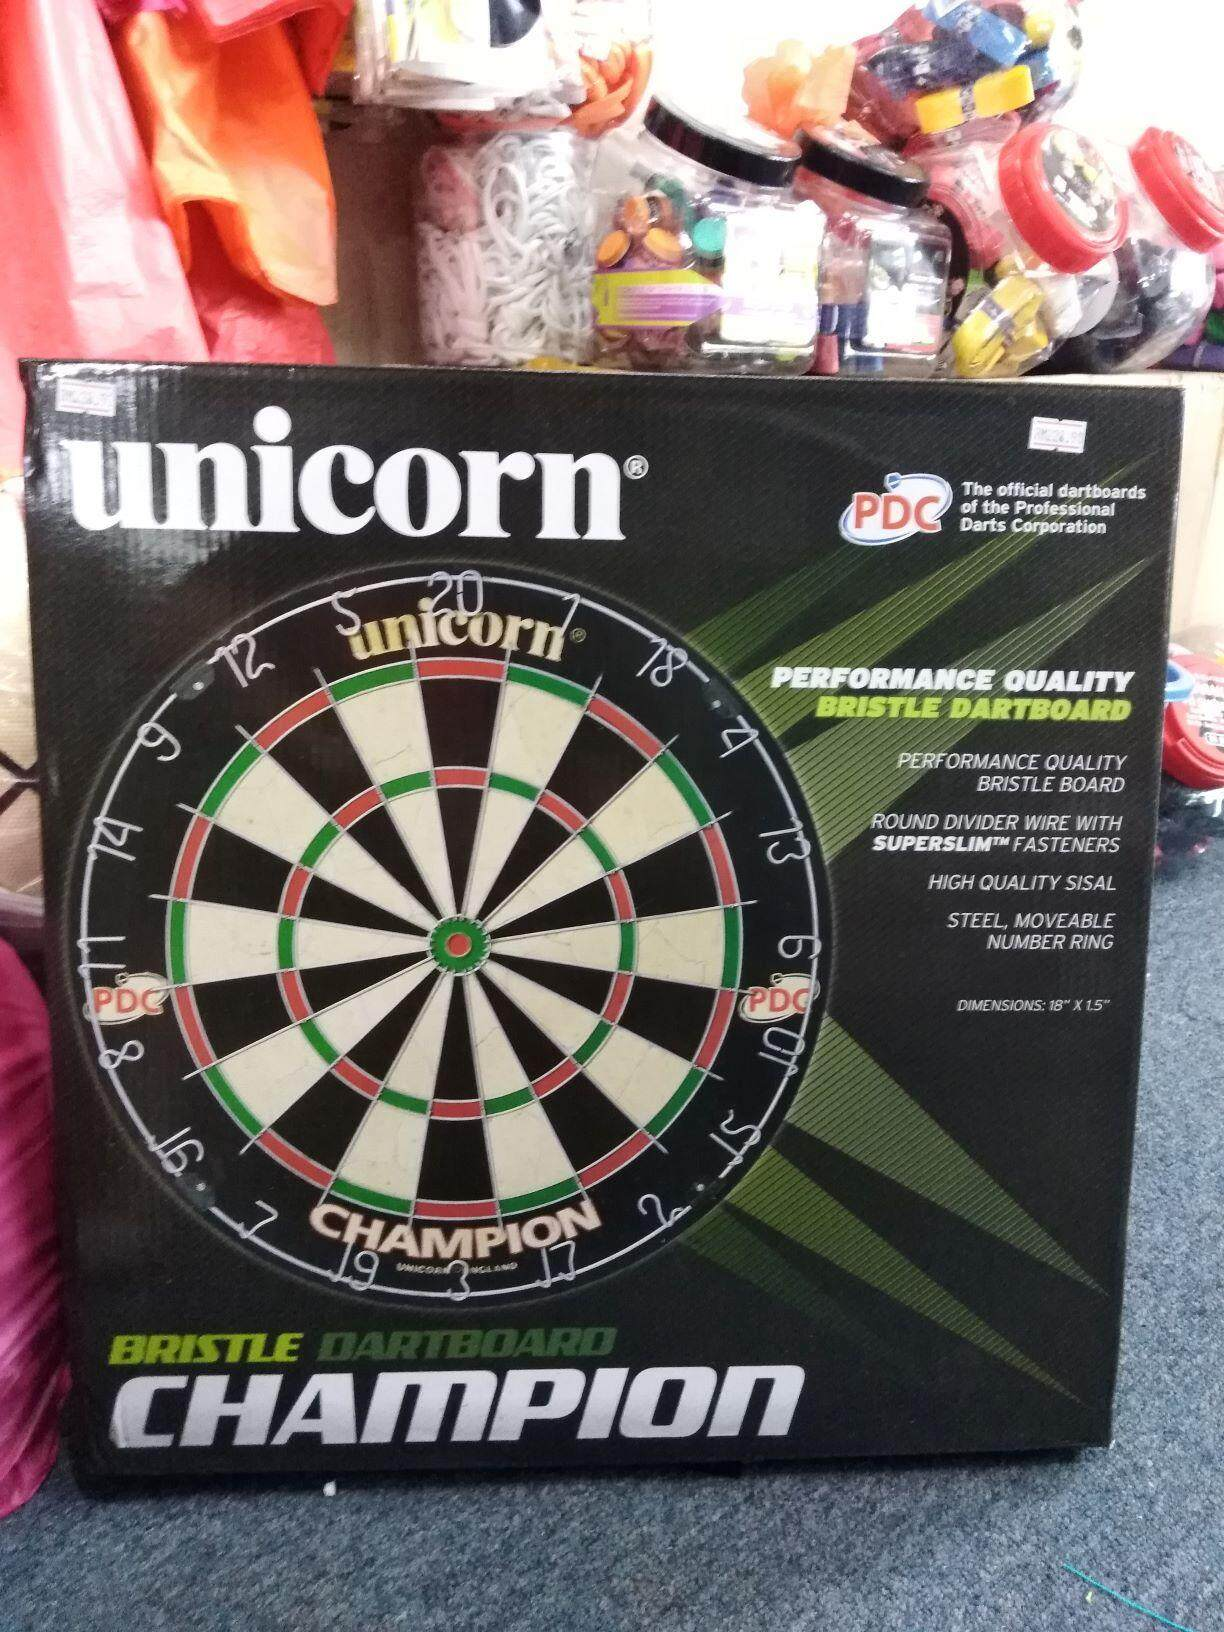 Unicorn Champion Britsle Dartboard